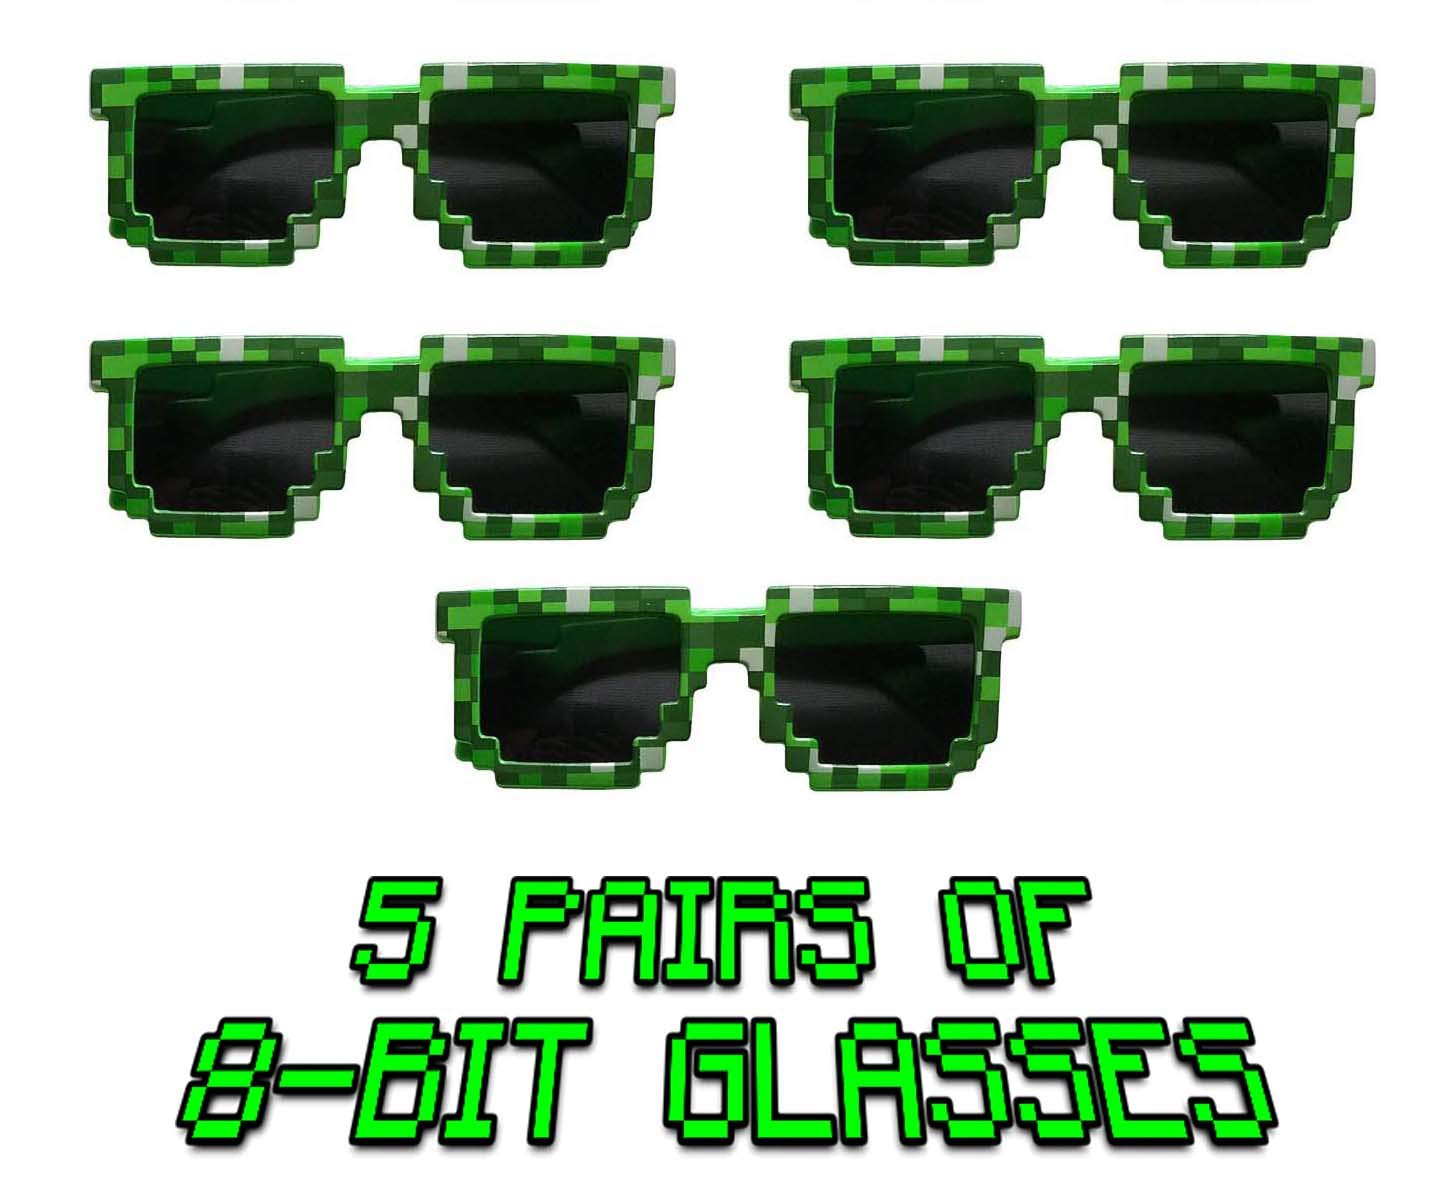 Wristbands Gypsy Jades Pixel Style Party Favors Great for Mine Crafter 5 Pack Includes 8-Bit Pixelated Glasses Balloons /& More! Jade/'s Enterprises Building and Crafting Style Games and Video Games